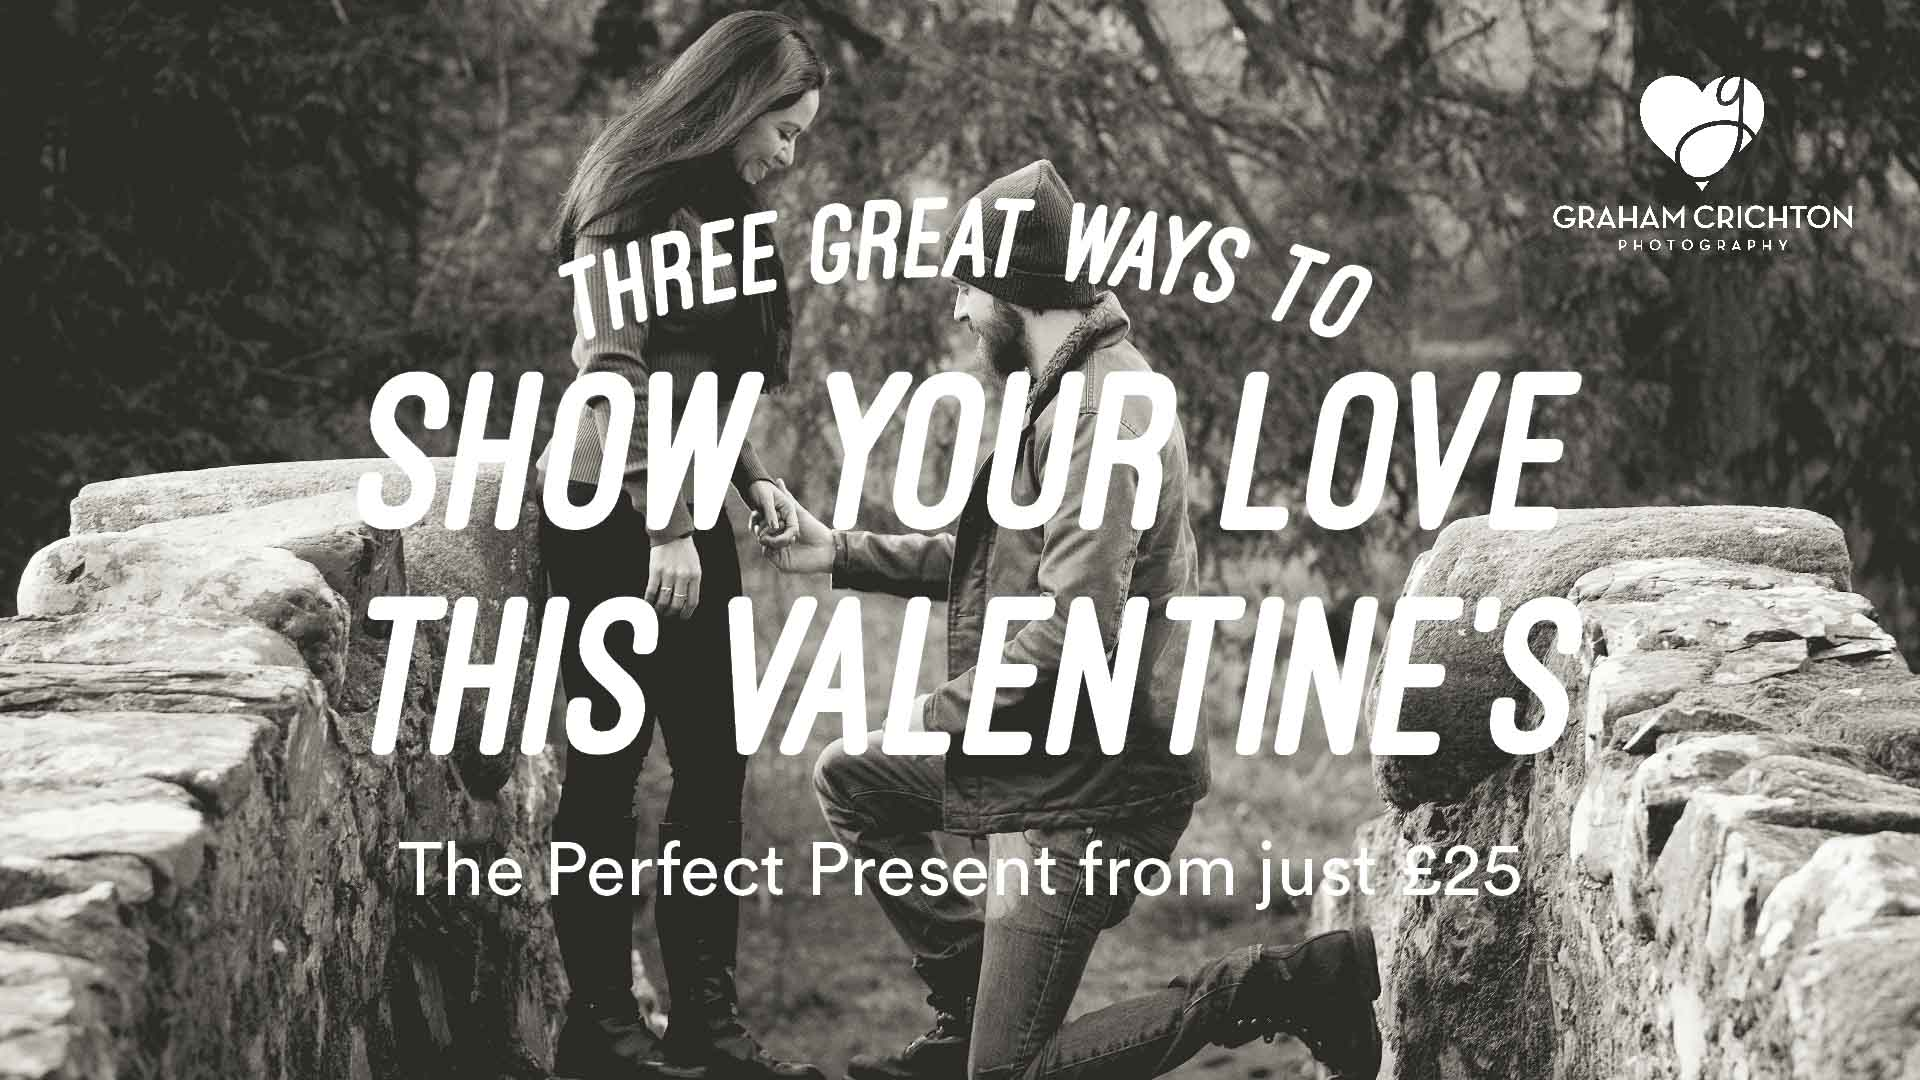 Show your love this Valentine's